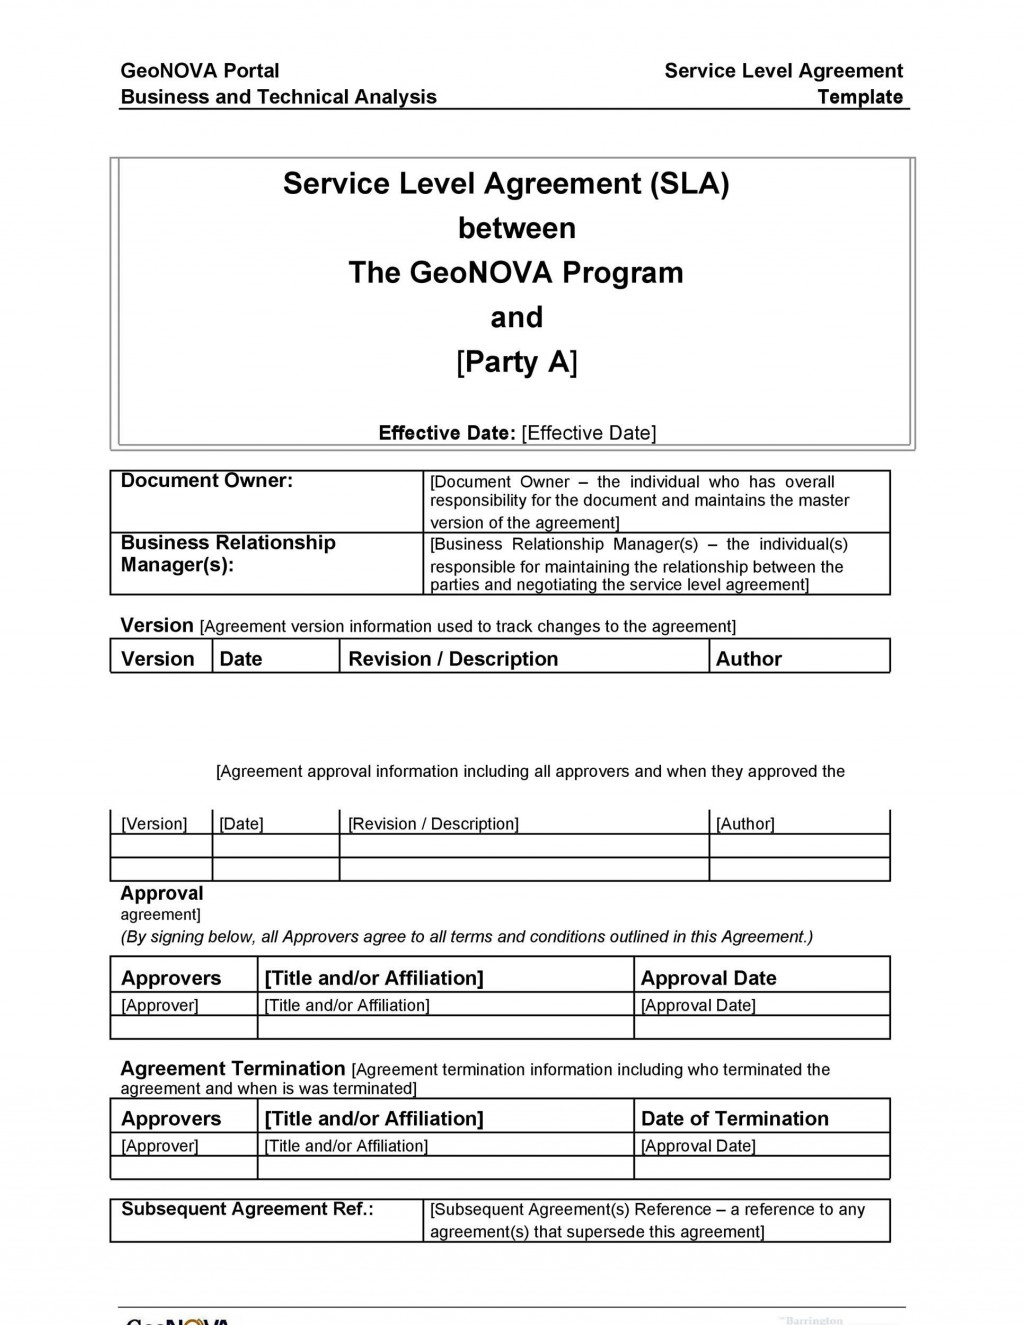 007 Fearsome Service Level Agreement Template Photo  South Africa Nz For Website DevelopmentLarge